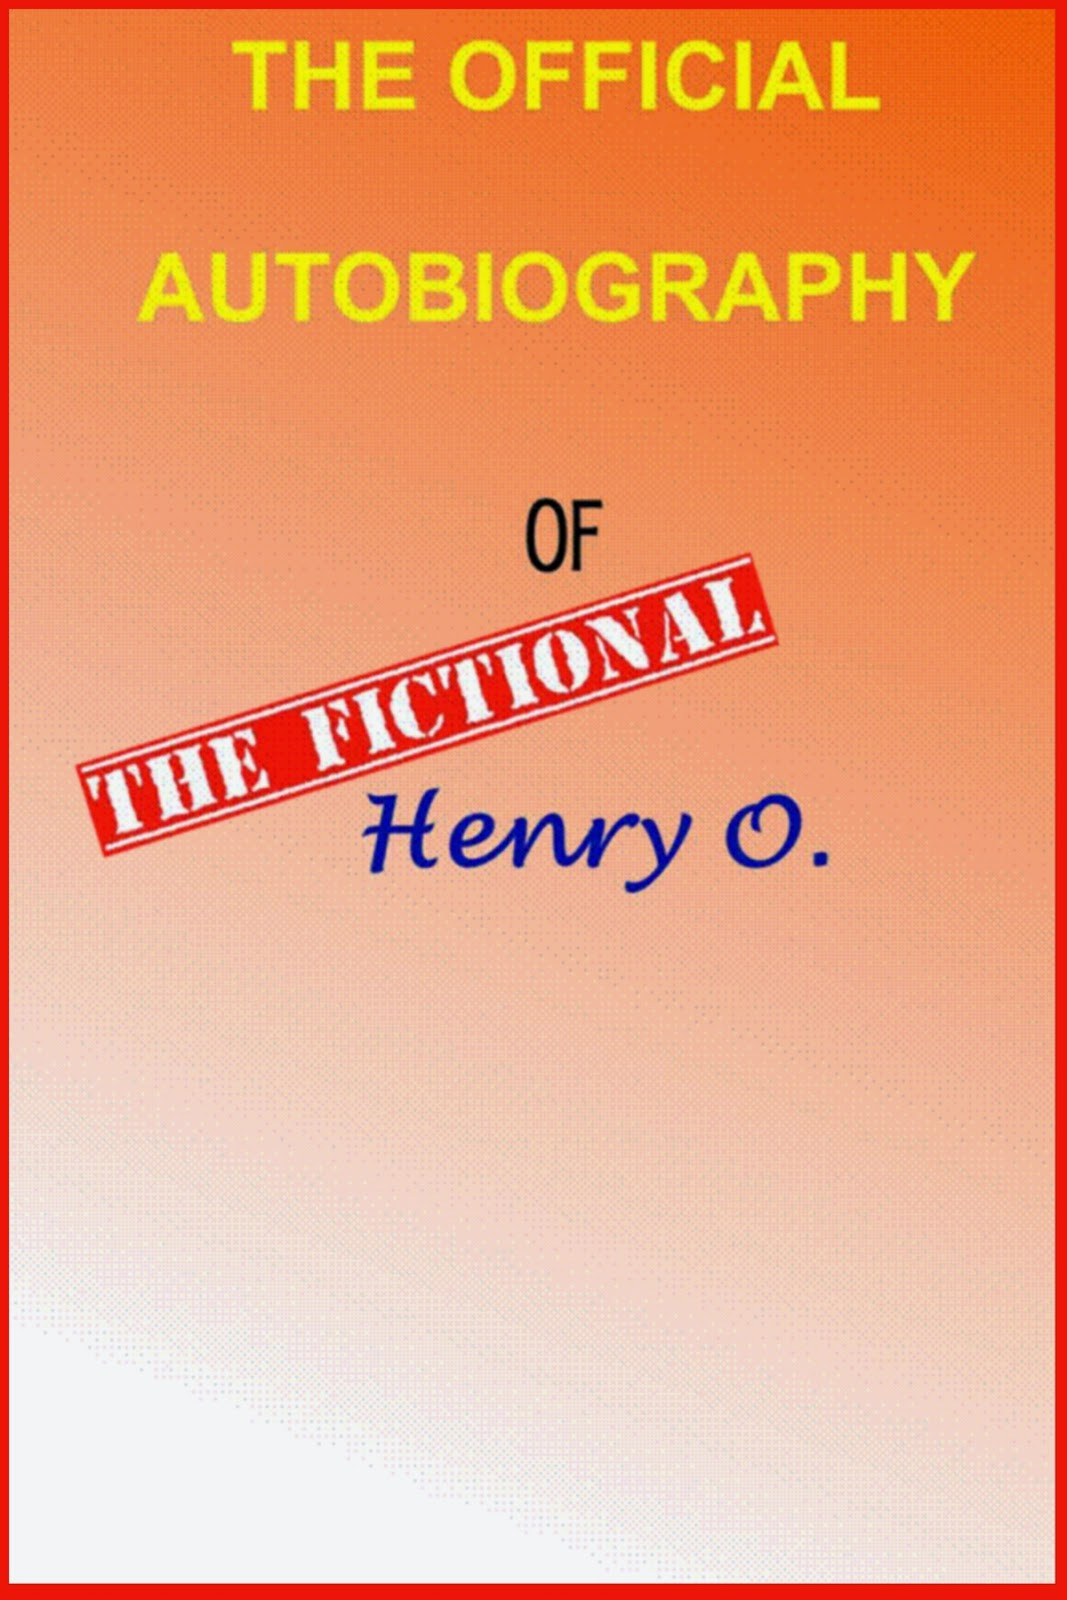 http://fictionalhenryo.blogspot.com/